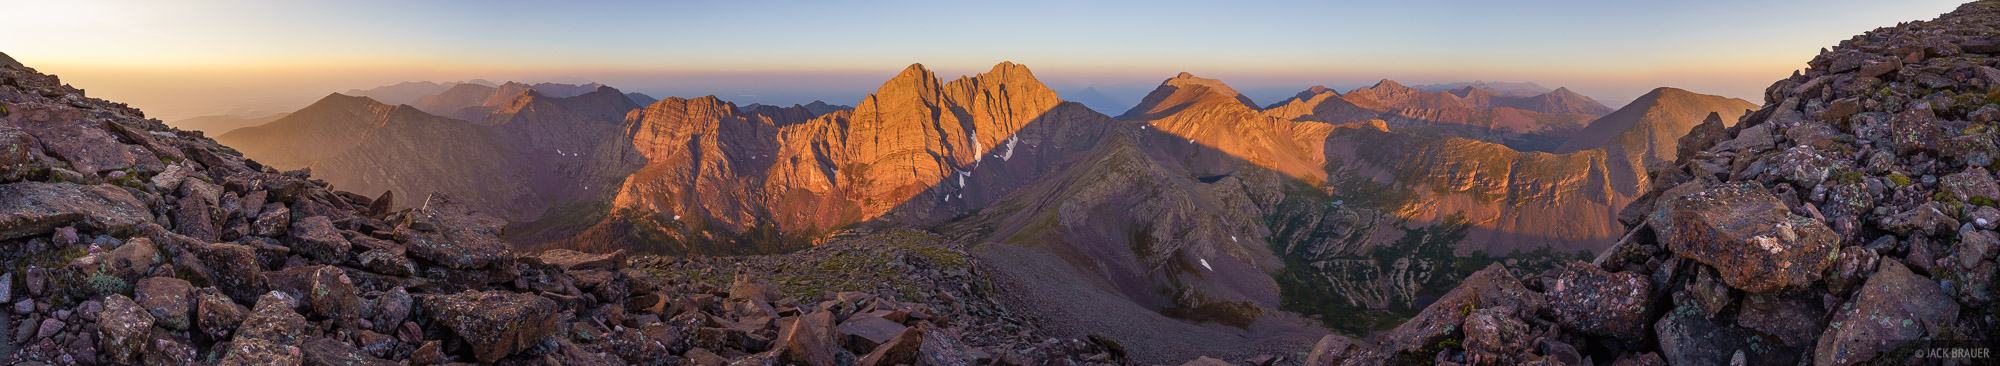 Colorado, Crestone Needle, Crestone Peak, Humboldt Peak, Sangre de Cristos, panorama, photo